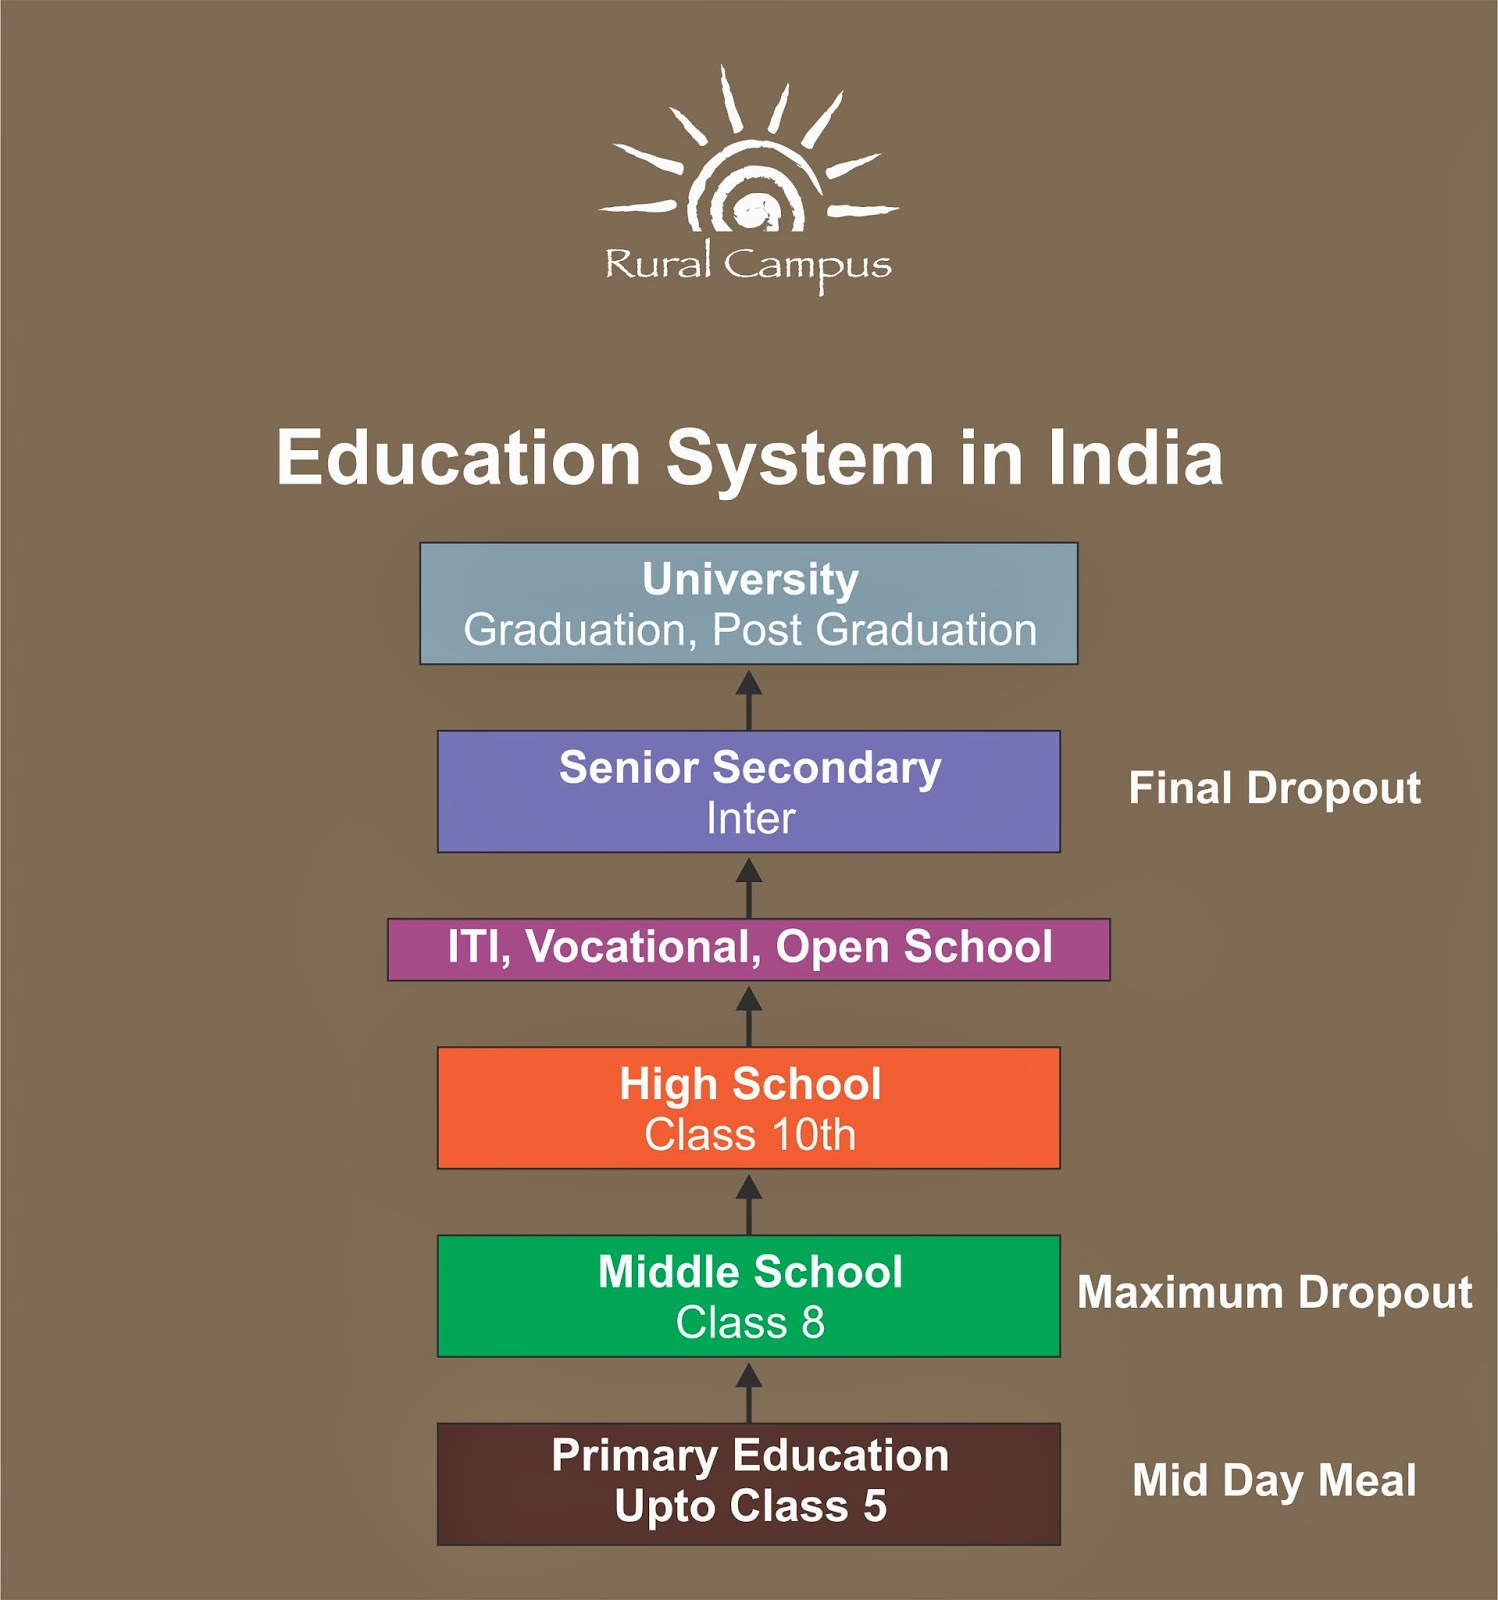 education system in india While quantitatively india is inching closer to universal education, the quality of its education has been questioned particularly in its government run school systemwhile more than 95 percent of children attend primary school, just 40 percent of indian adolescents attend secondary school (grades 9-12.